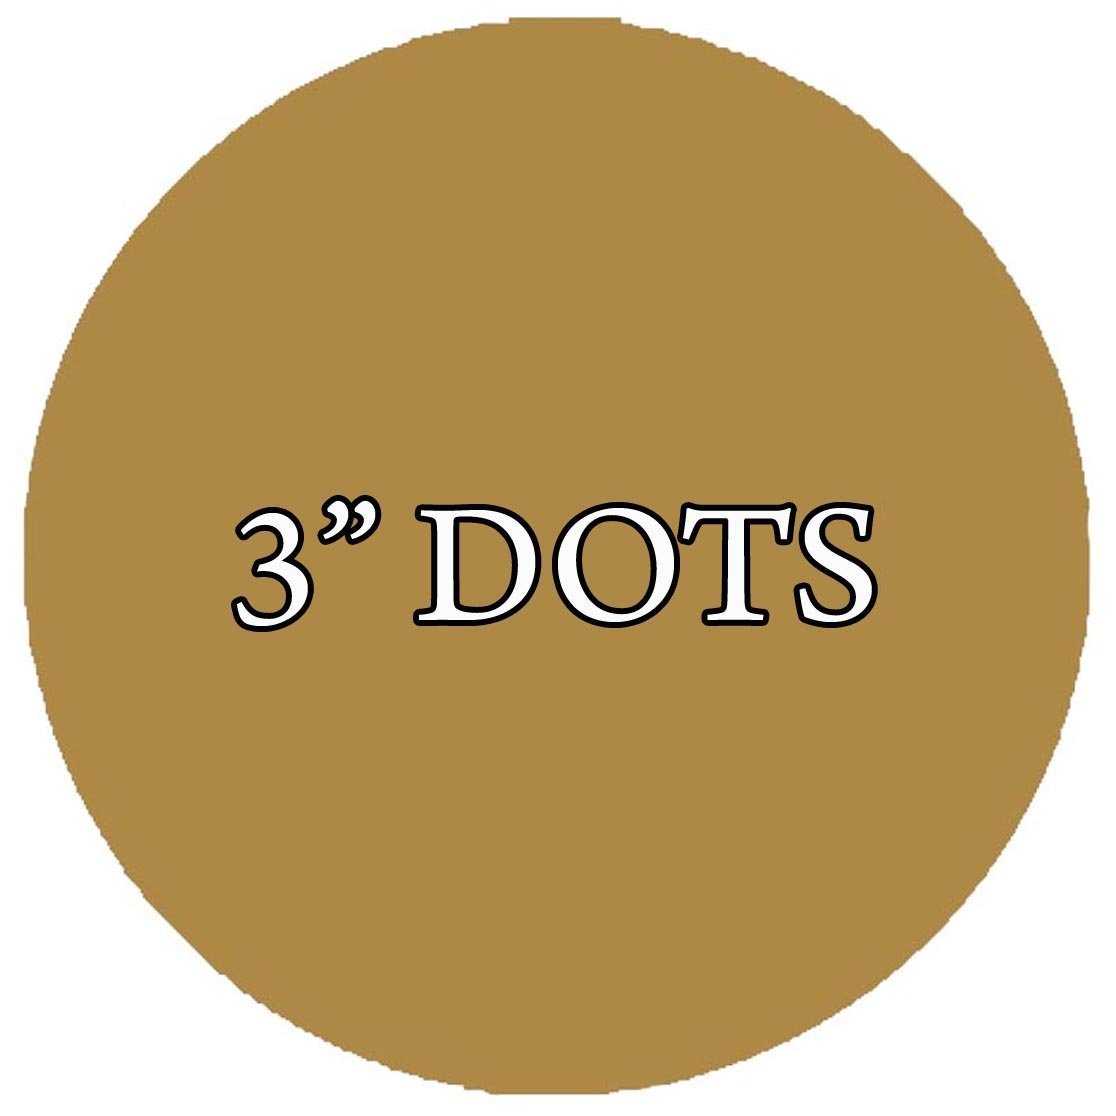 VWAQ 20 Polka Dot Wall Decals 3 Inch Peel & Stick Circles Dots Colors Kids Room VWAQ-555 (Gold)